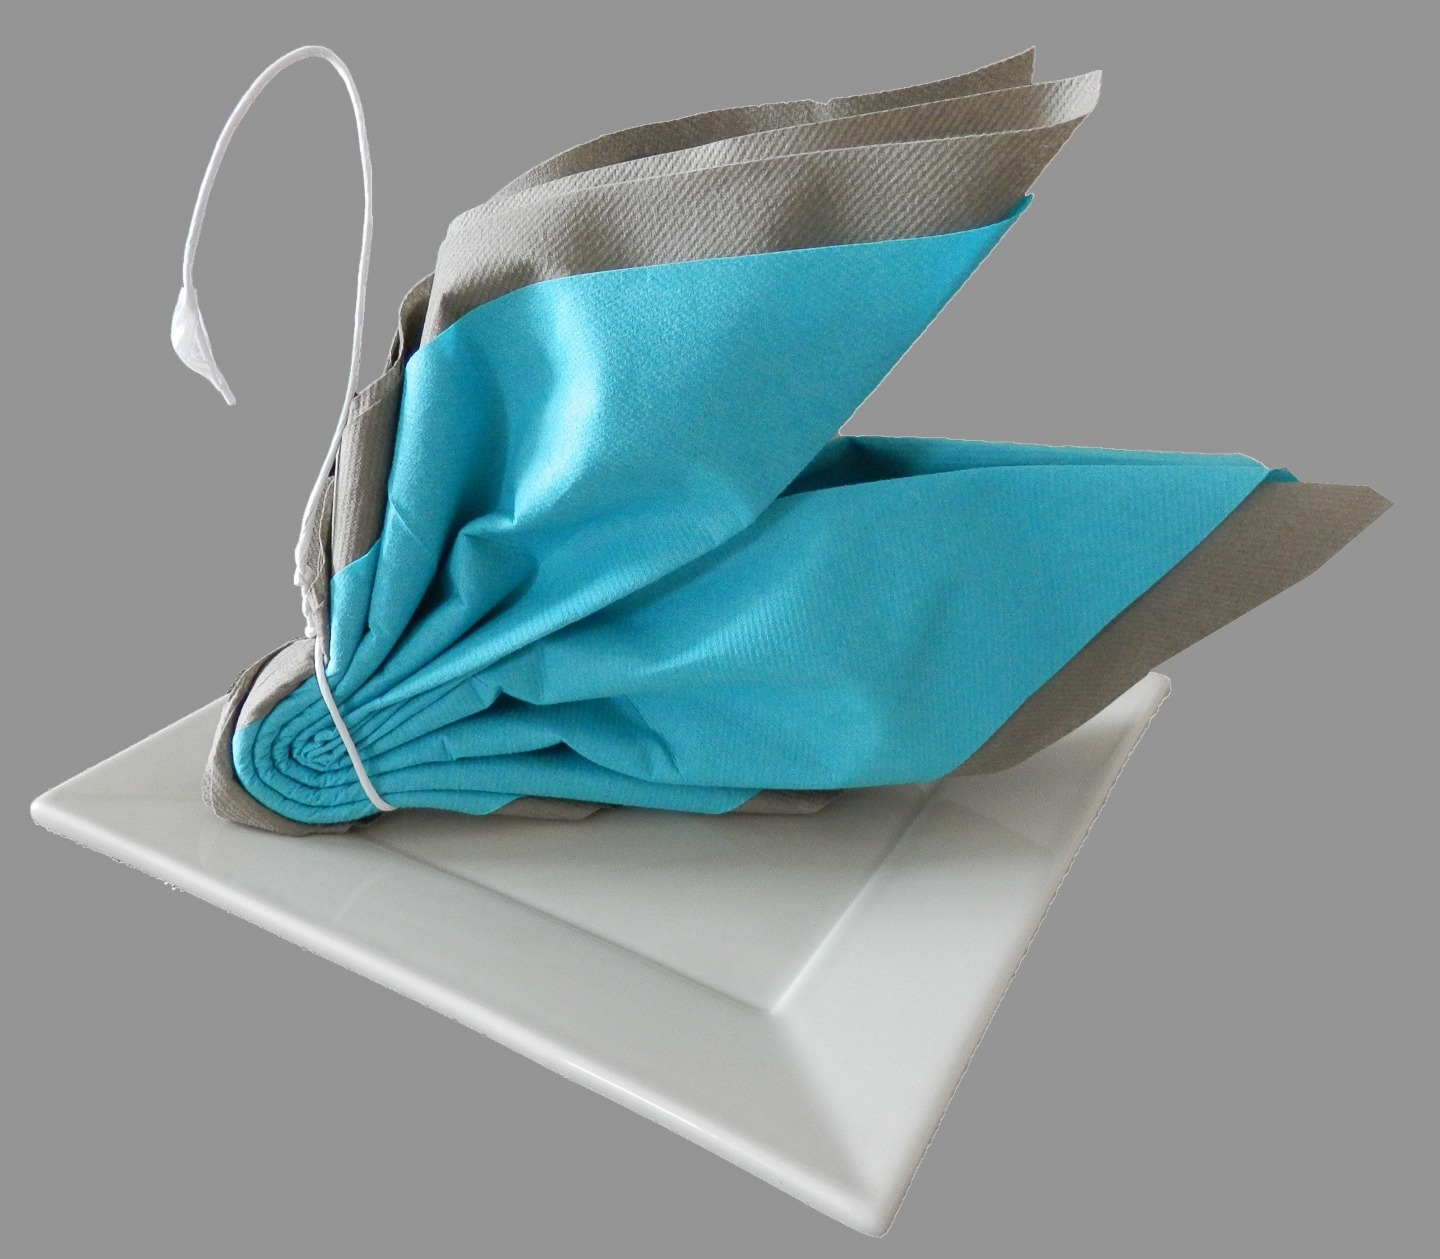 Pliage serviette le petit d tail qui peut gayer toute votre table - Pliage serviettes de table ...